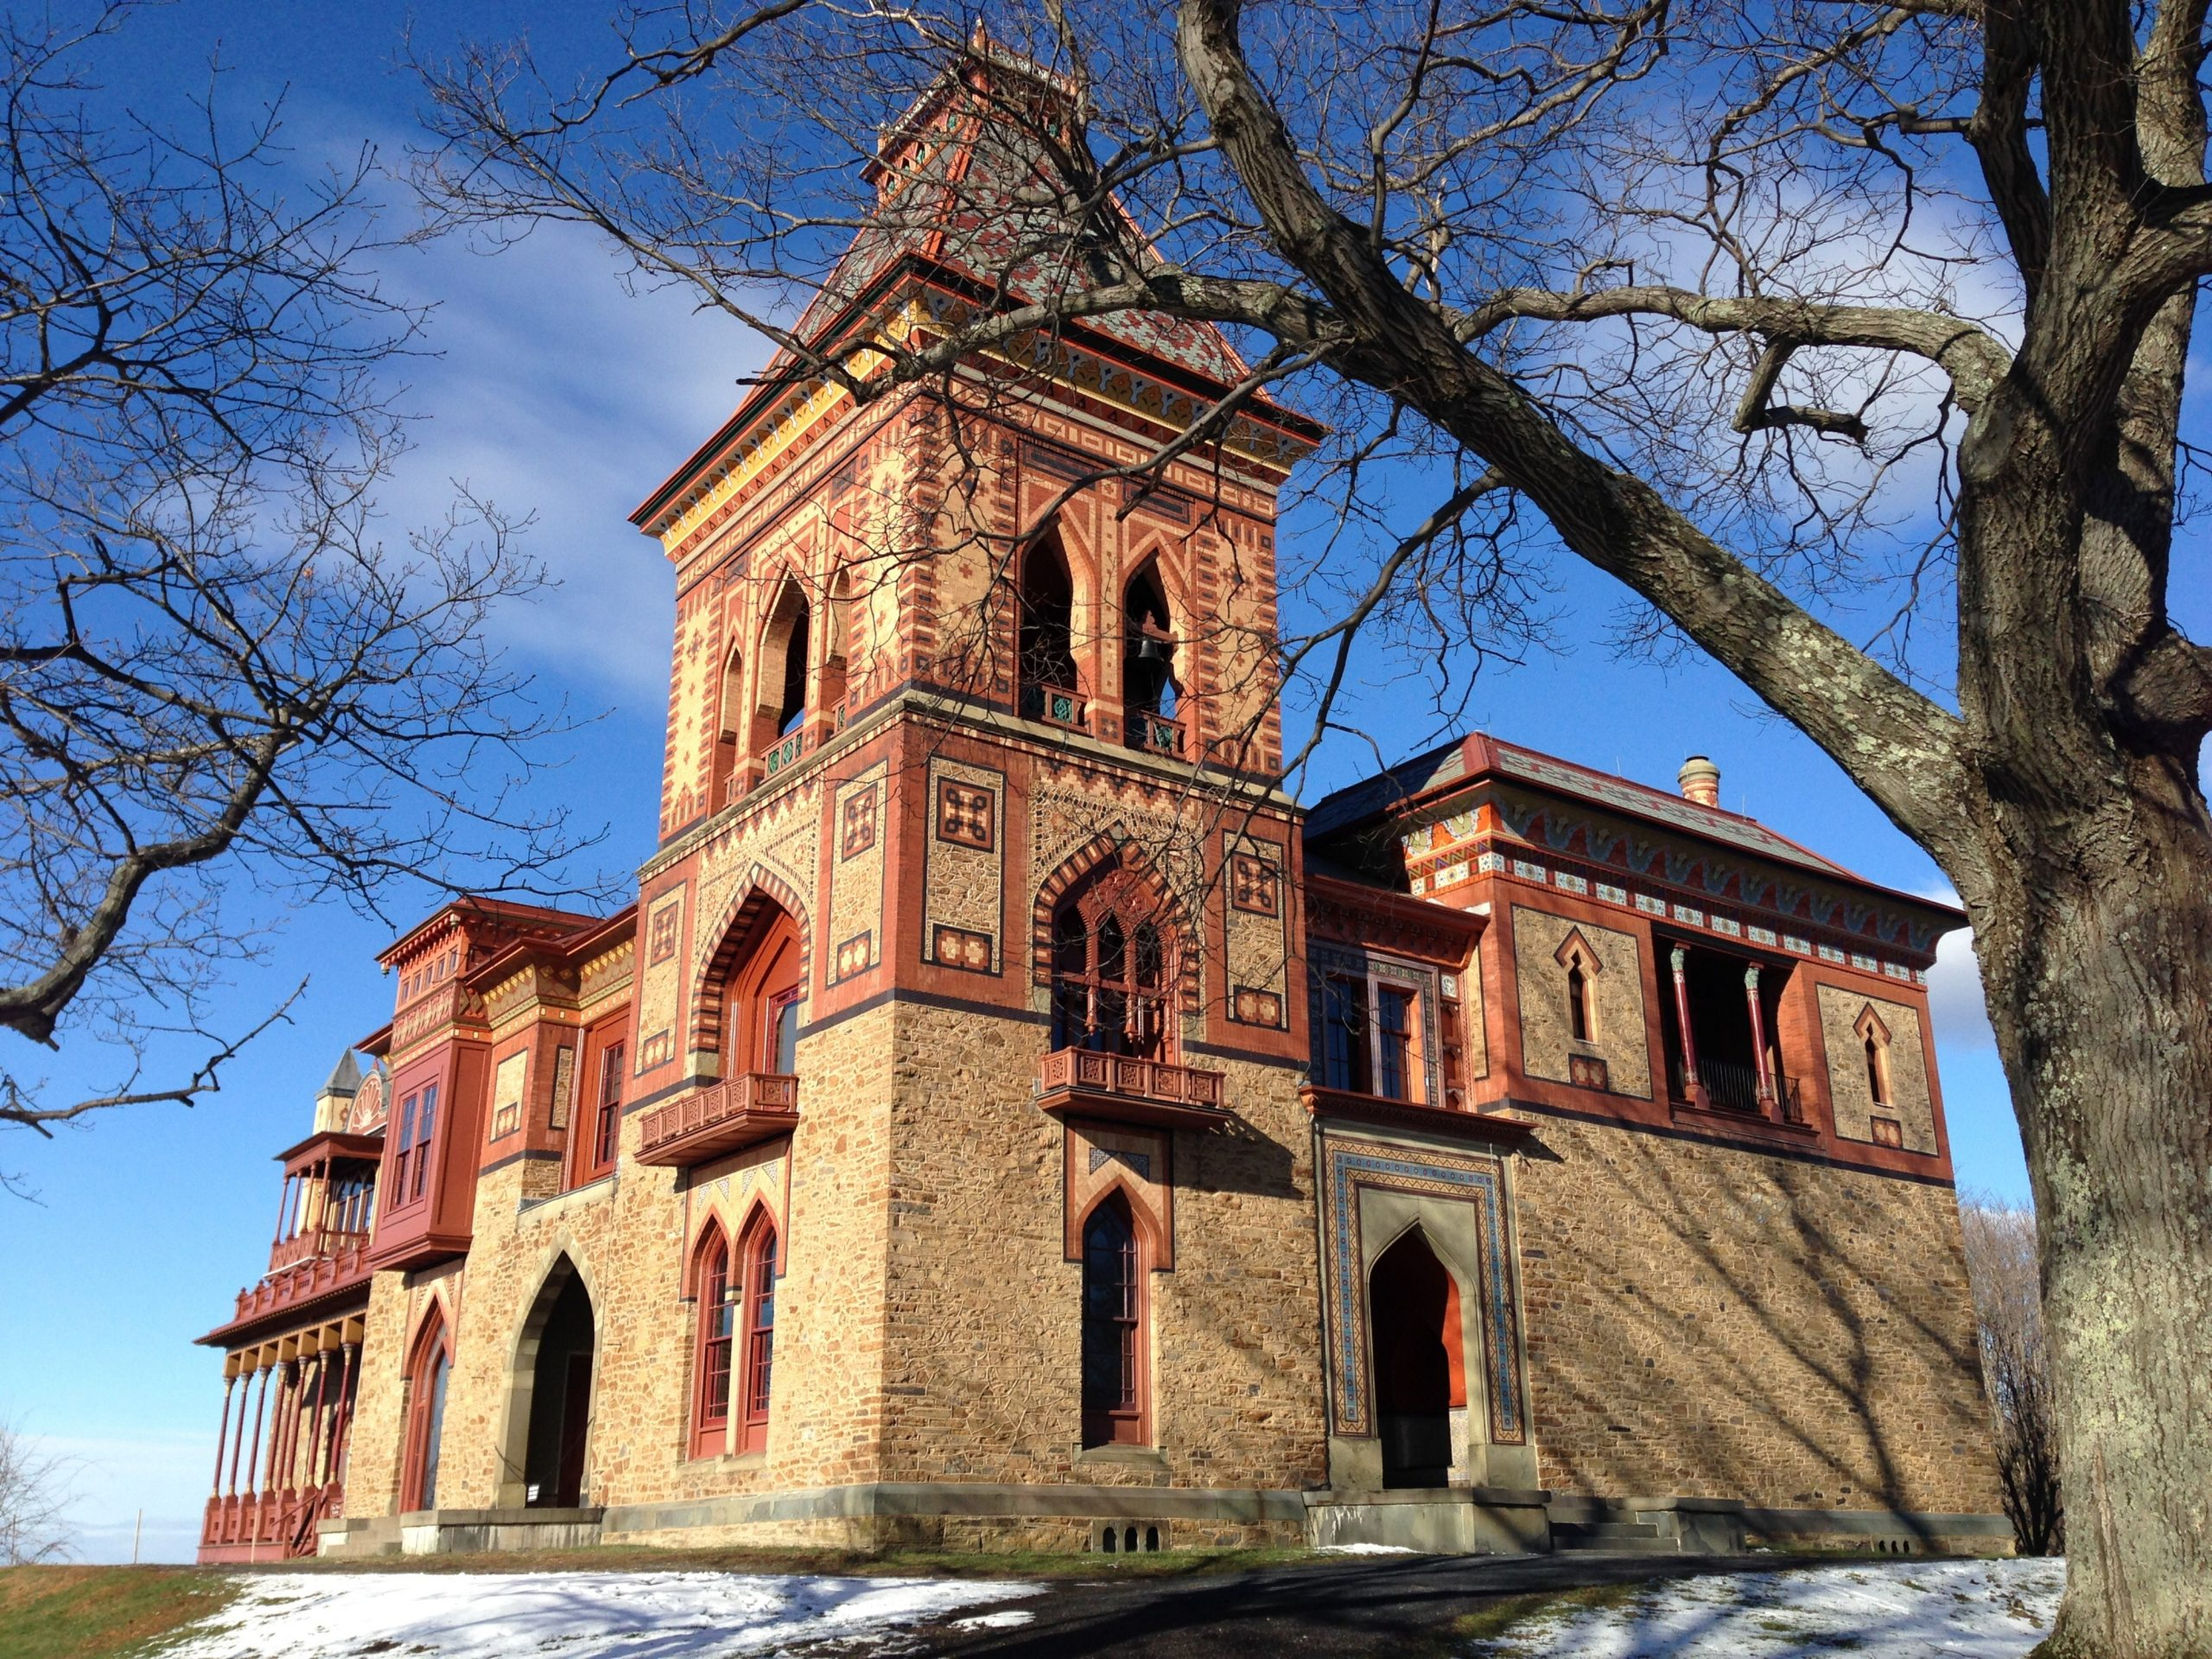 Visiting Olana State Historic Site